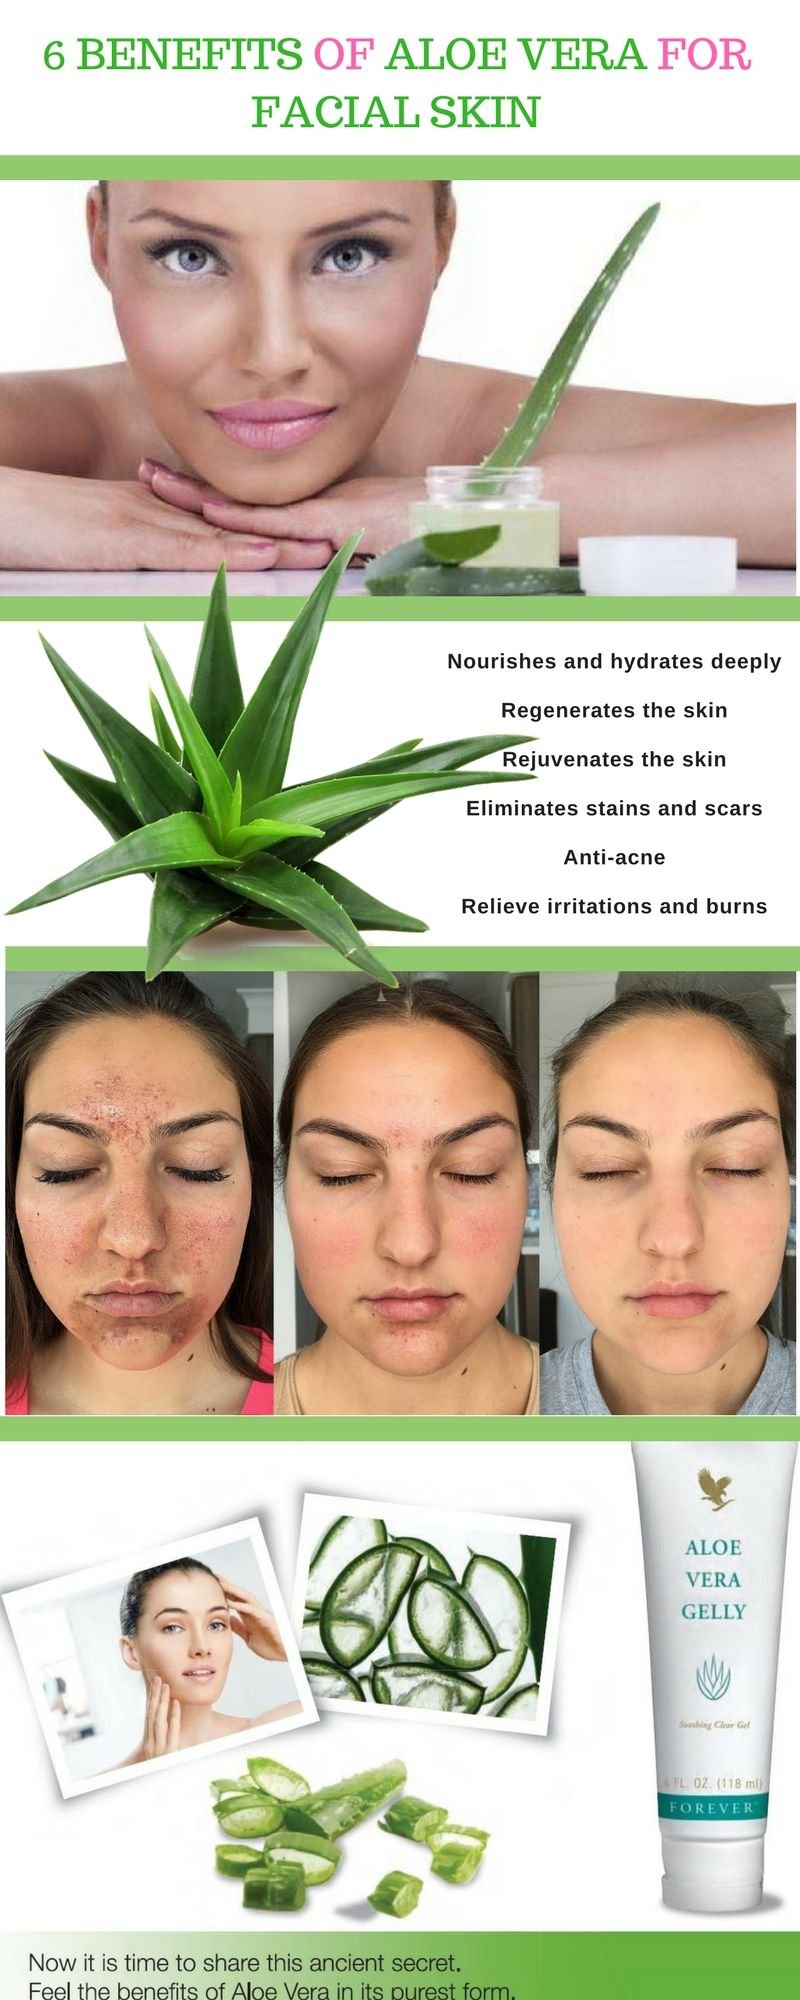 Benefits Of Aloe Vera For Facial Skin Skin Care Natural Health From Aloe Vera Plants Aloe Vera For Skin Aloe Vera Gelly Aloe Vera